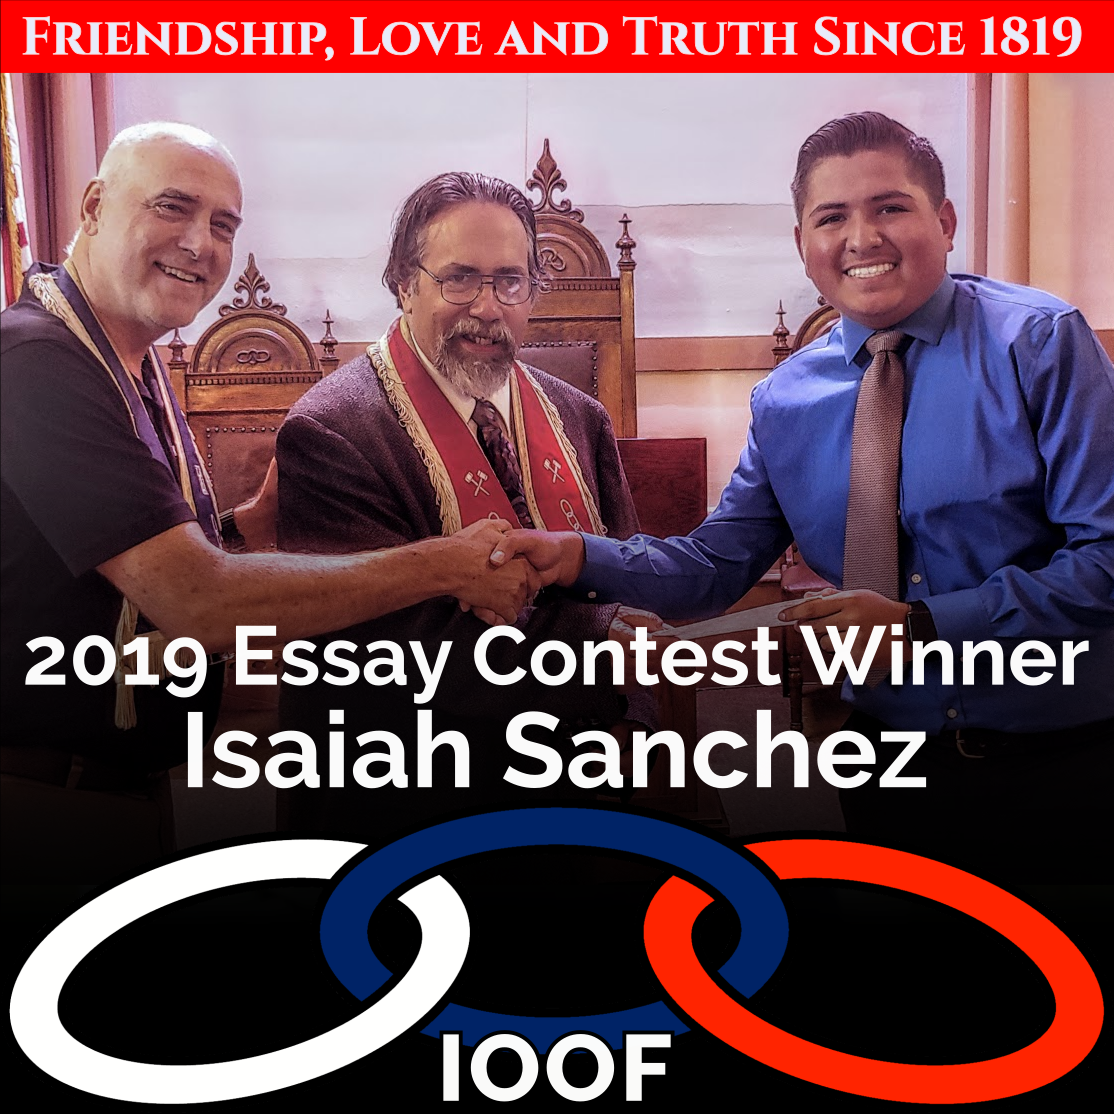 2019 Essay Contest Winner Isaiah Sanchez 3